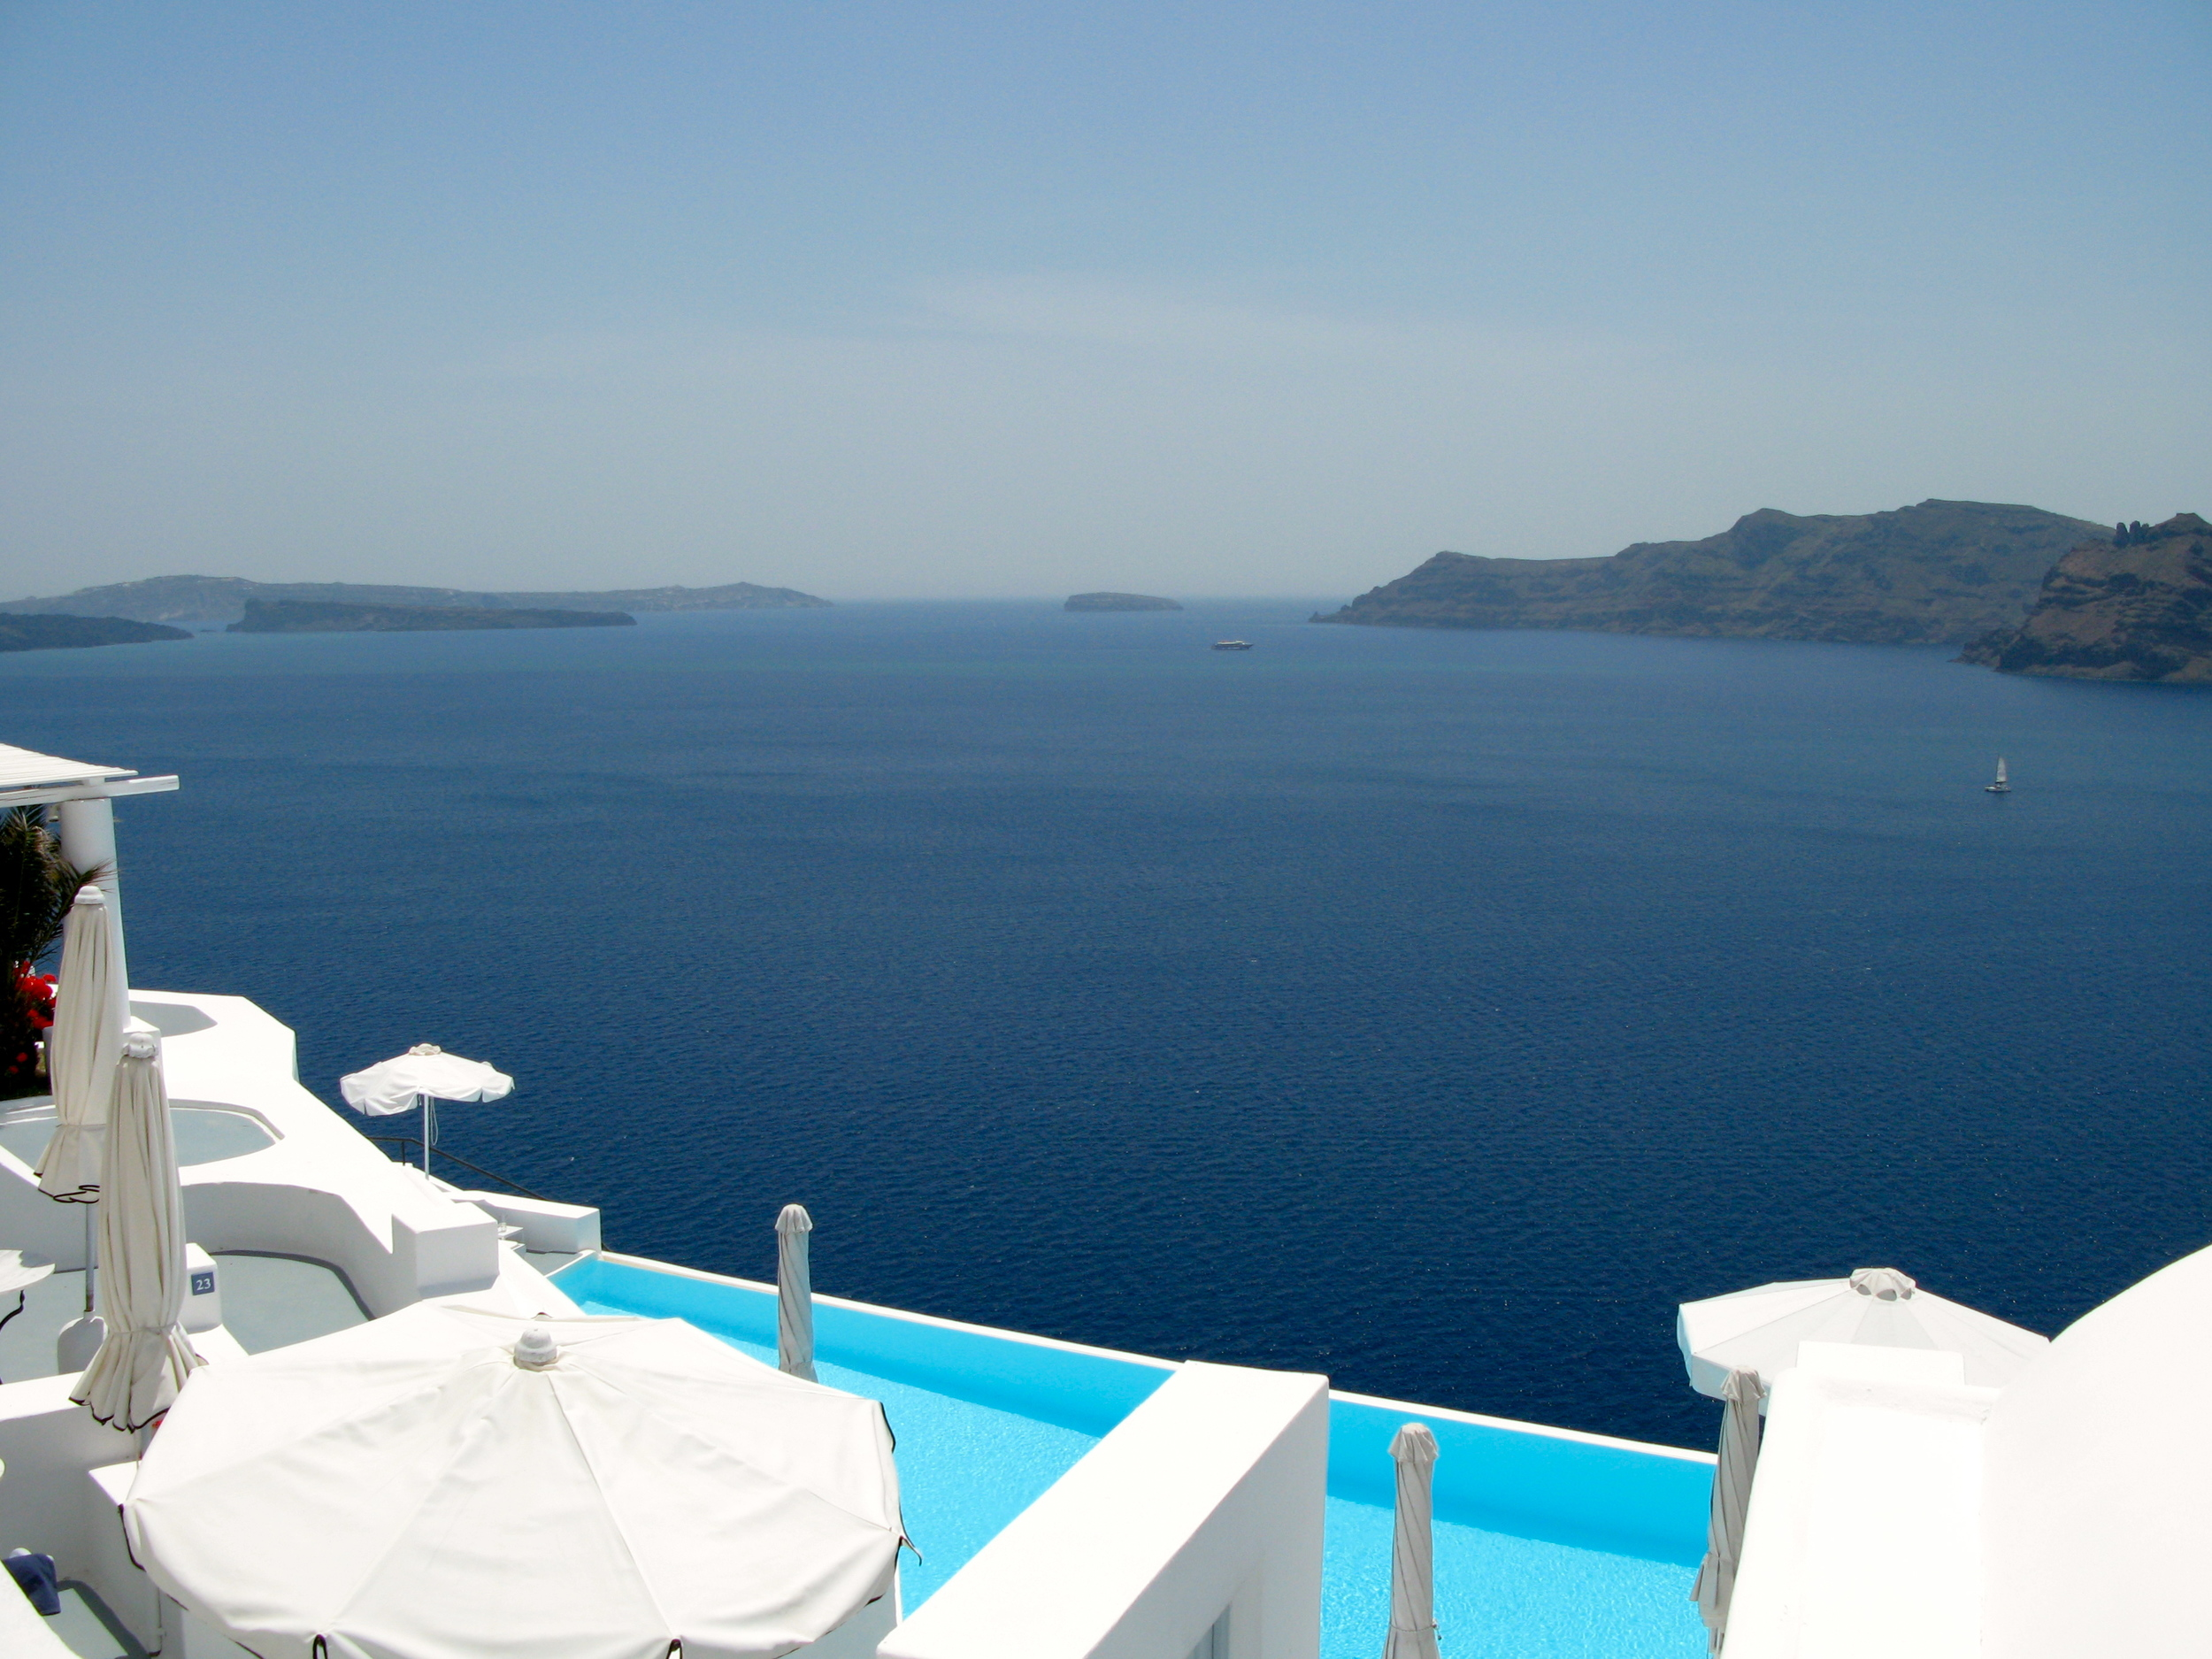 Pool at Katikies Hotel overlooking the Caldera in Santorini, Greece.  Photo by Rebecca Garland.